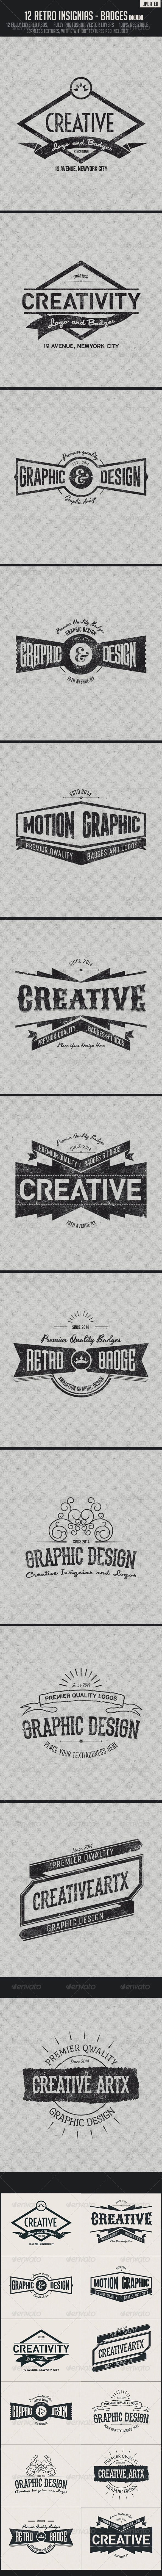 12 Retro Insignias - Badges  - Badges & Stickers Web Elements